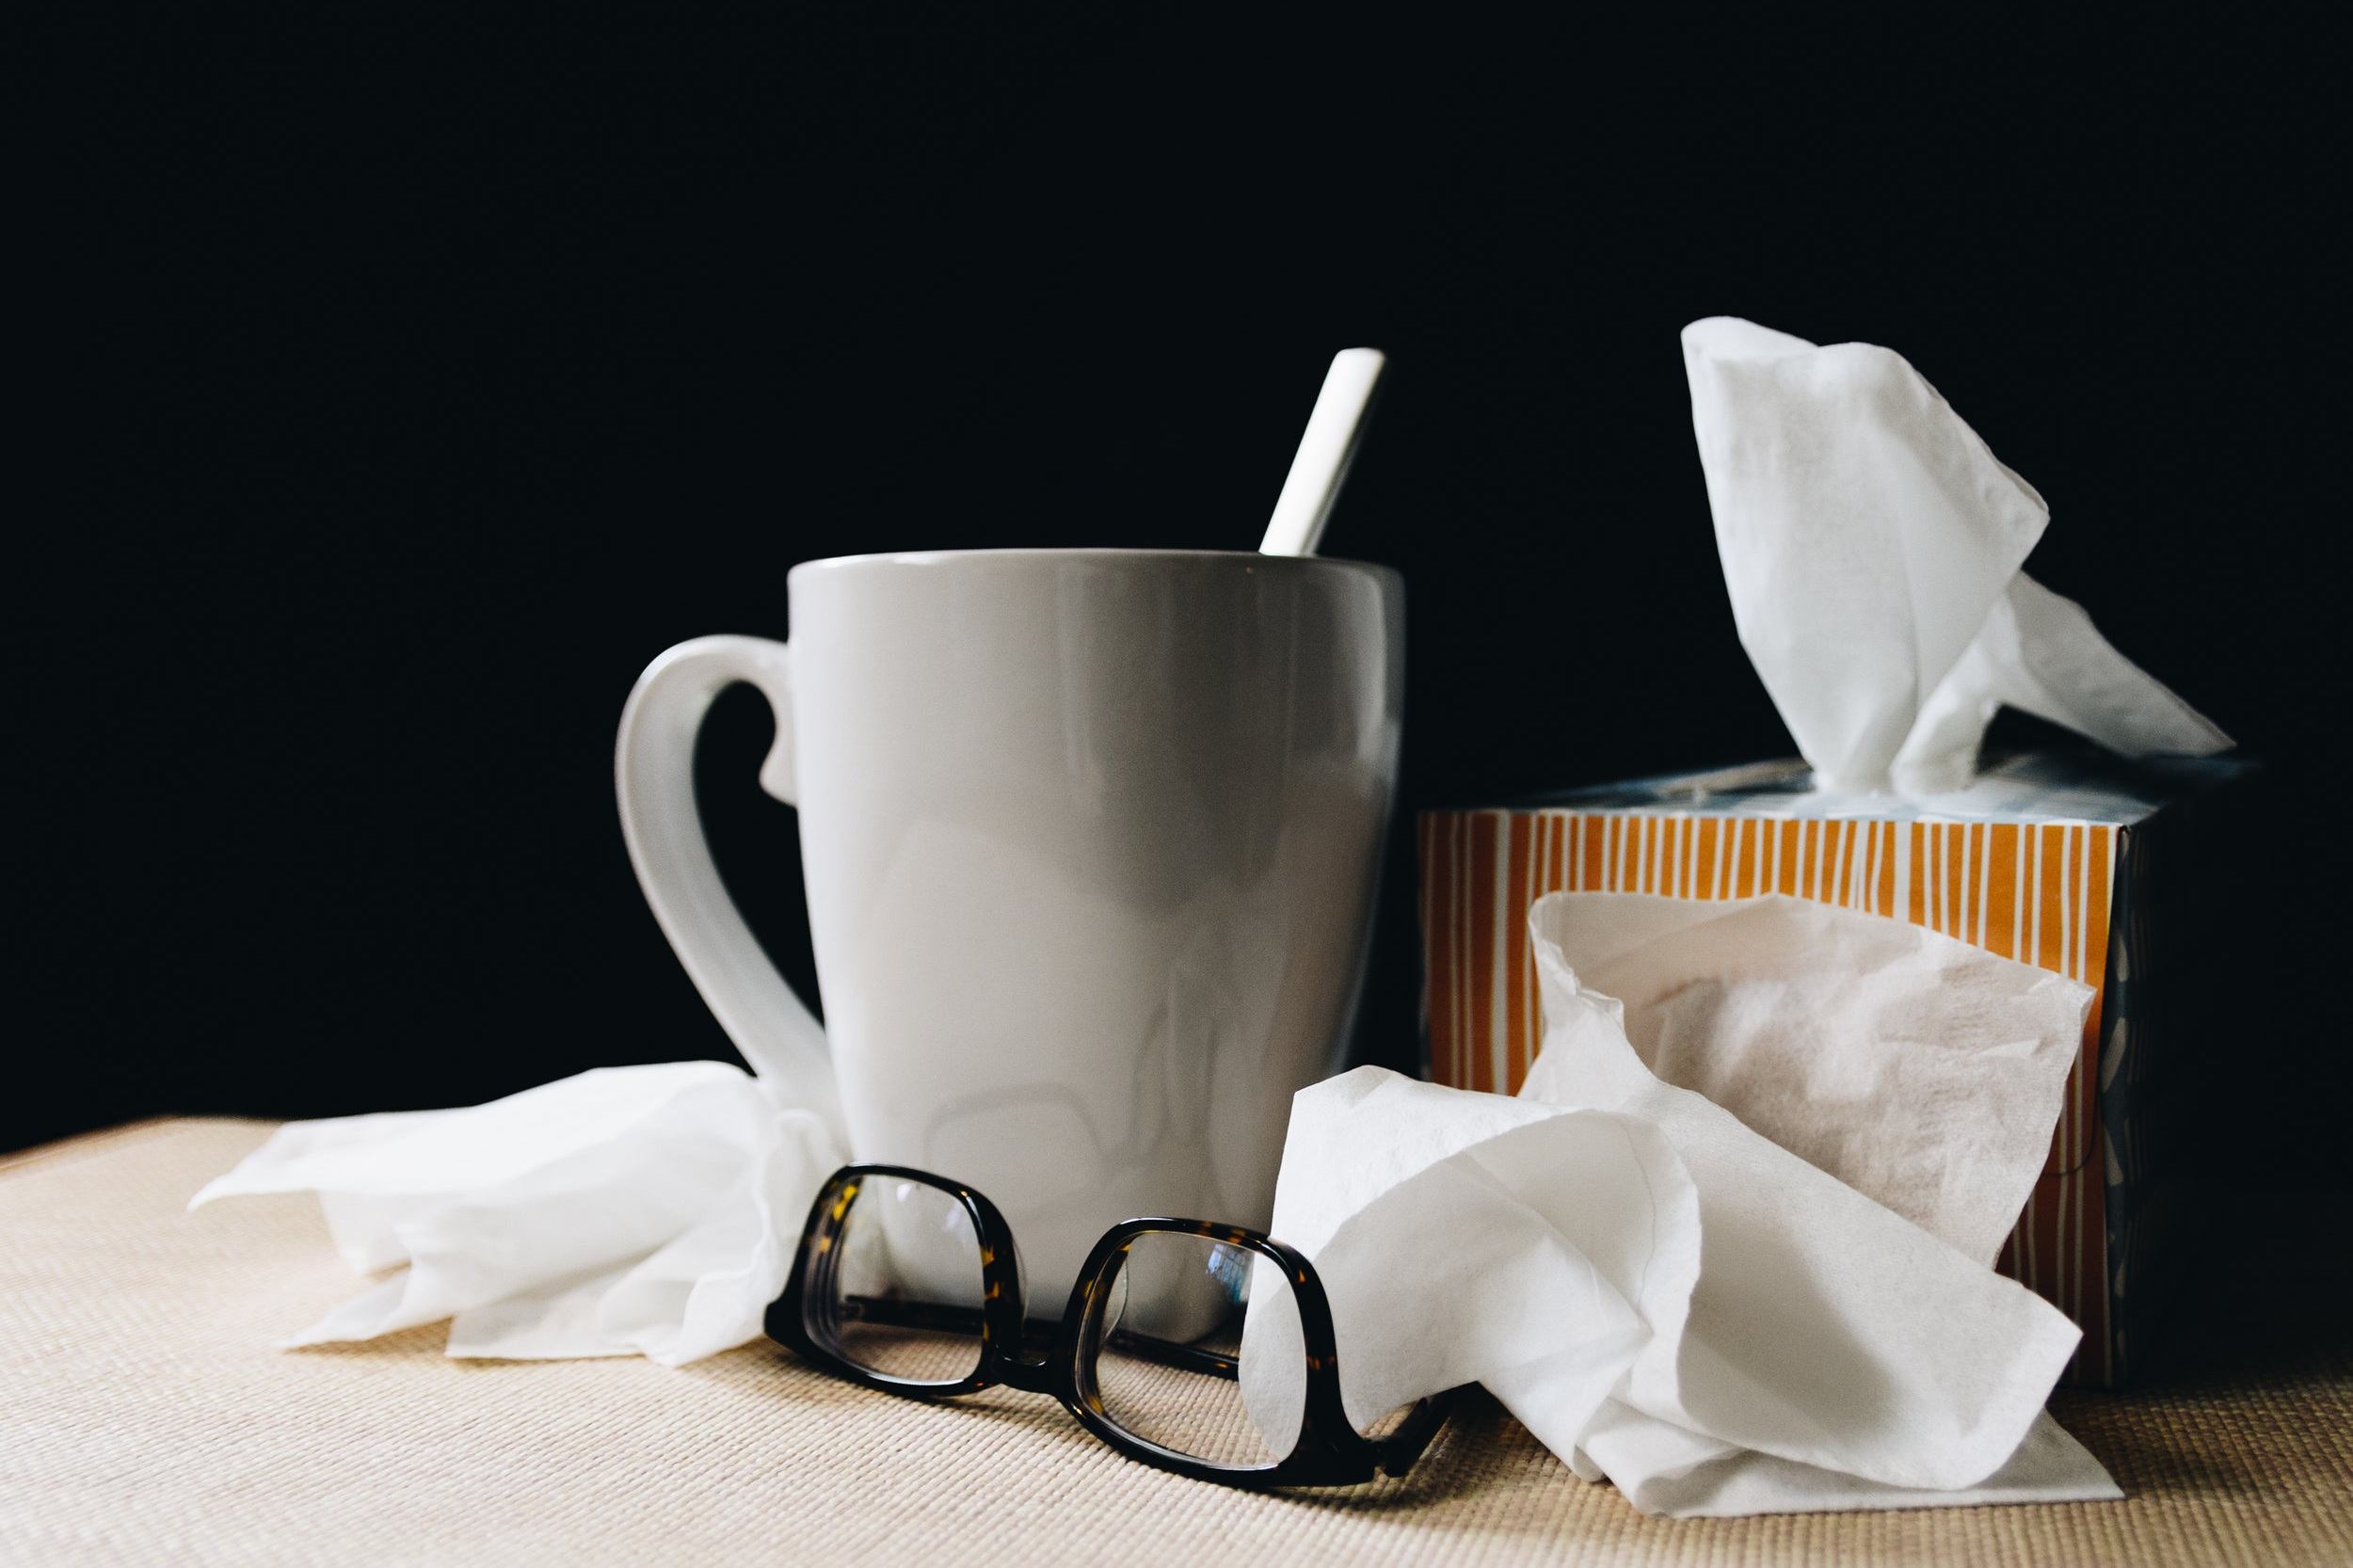 How to Prepare for Flu Season - Before the virus knocks you and your family out, try these tips to prepare for colds and flu. If you're lucky, they may also prevent at least some of your family from getting sick.